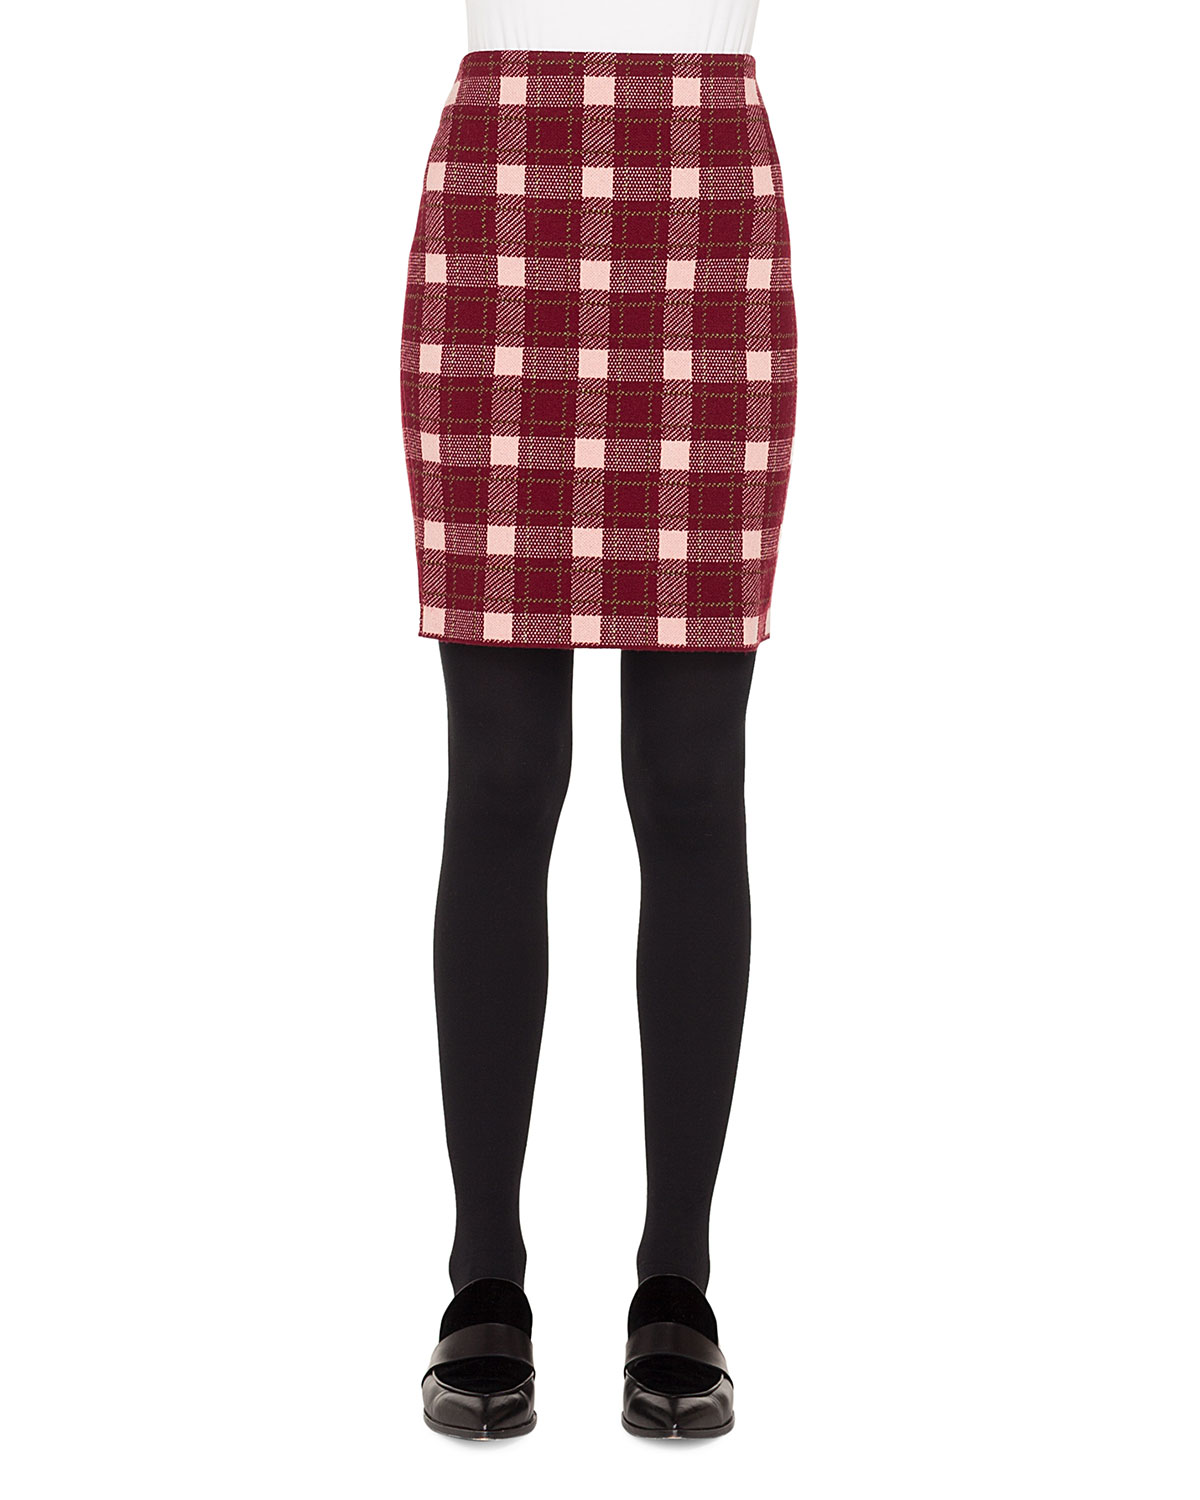 Brit-Check Pencil Knee-Length Wool/Cashmere Skirt in Multi Pattern